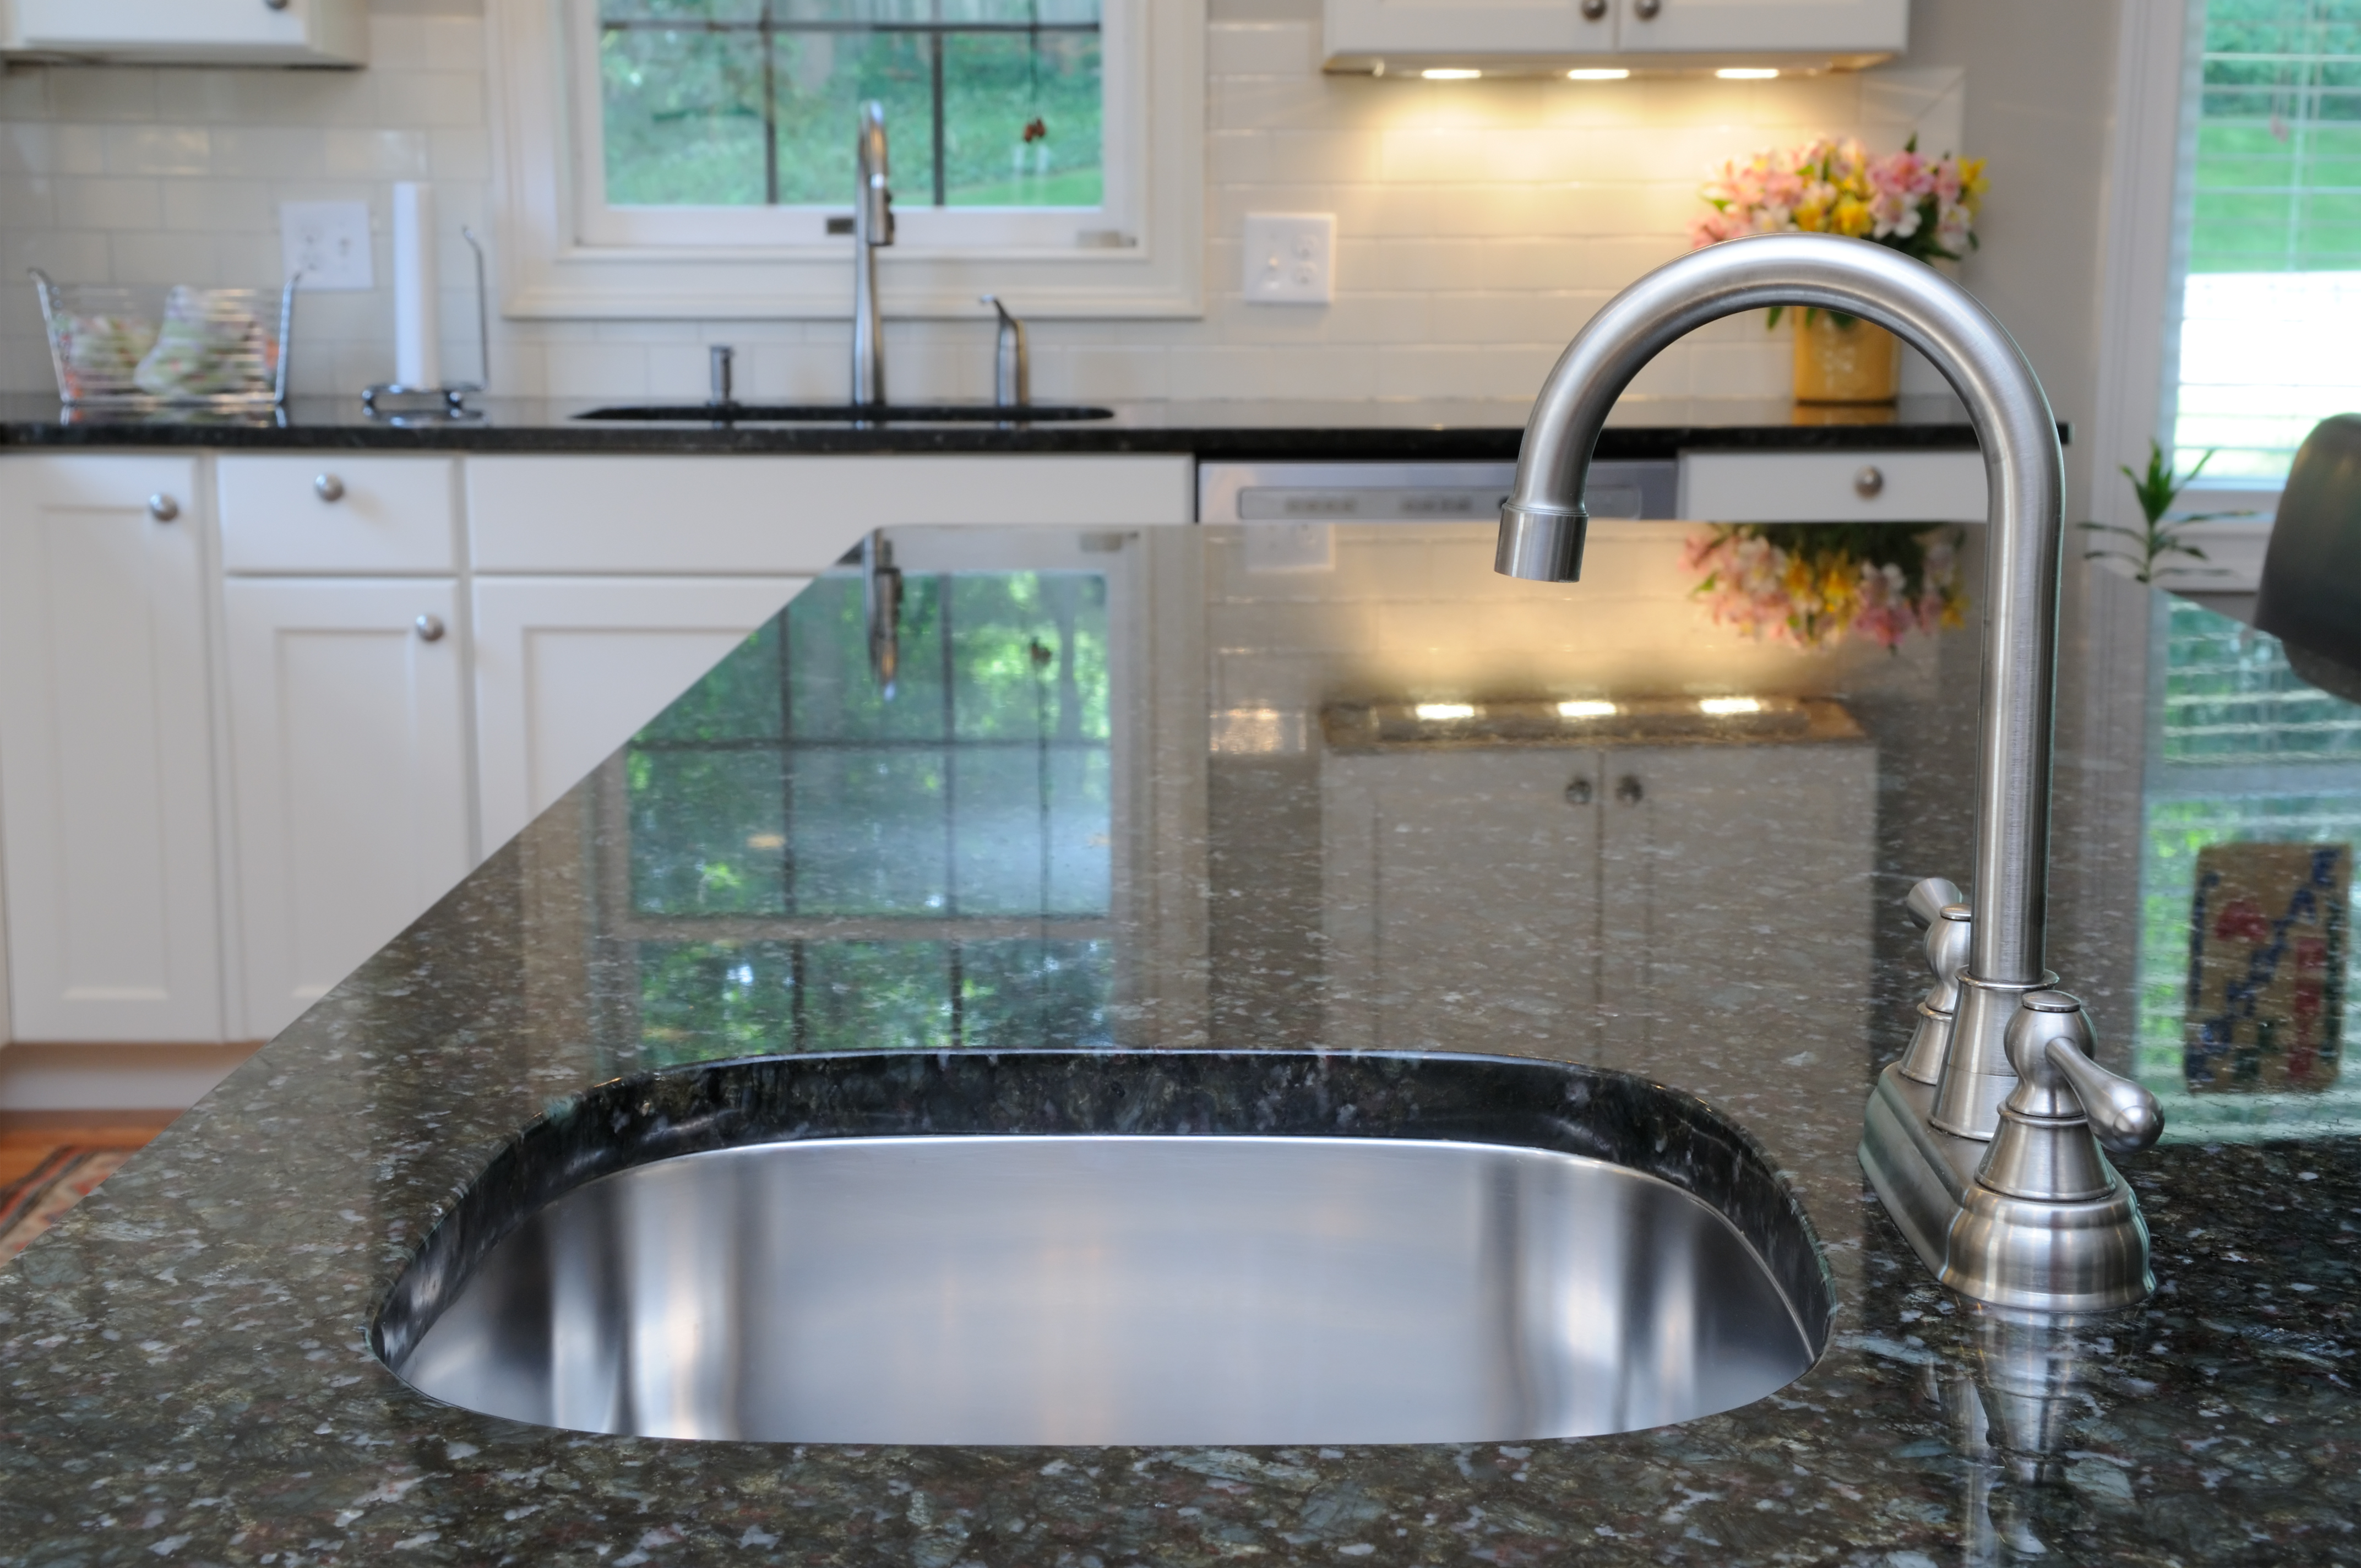 How To Repair A Loose Kitchen Faucet